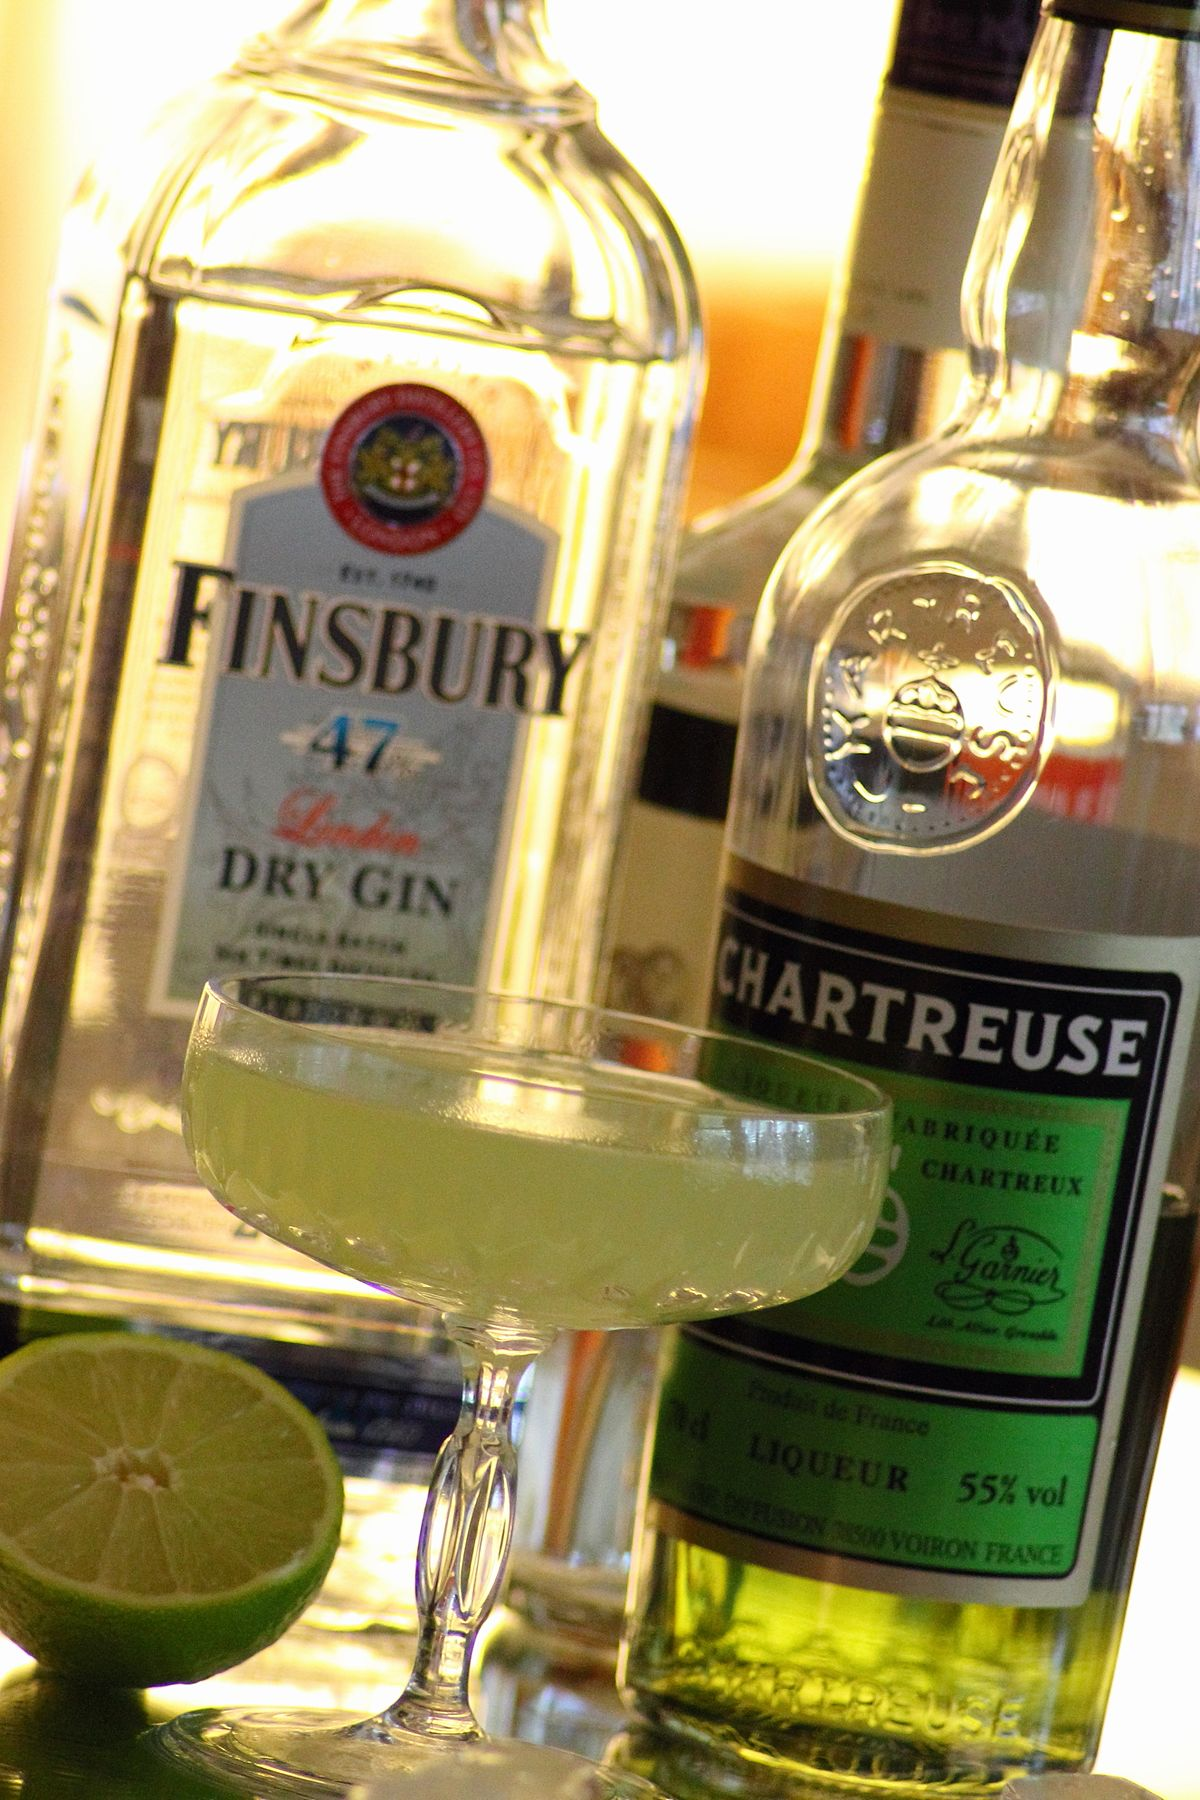 Chartreuse Farbe Last Word (cocktail) – Wikipedia